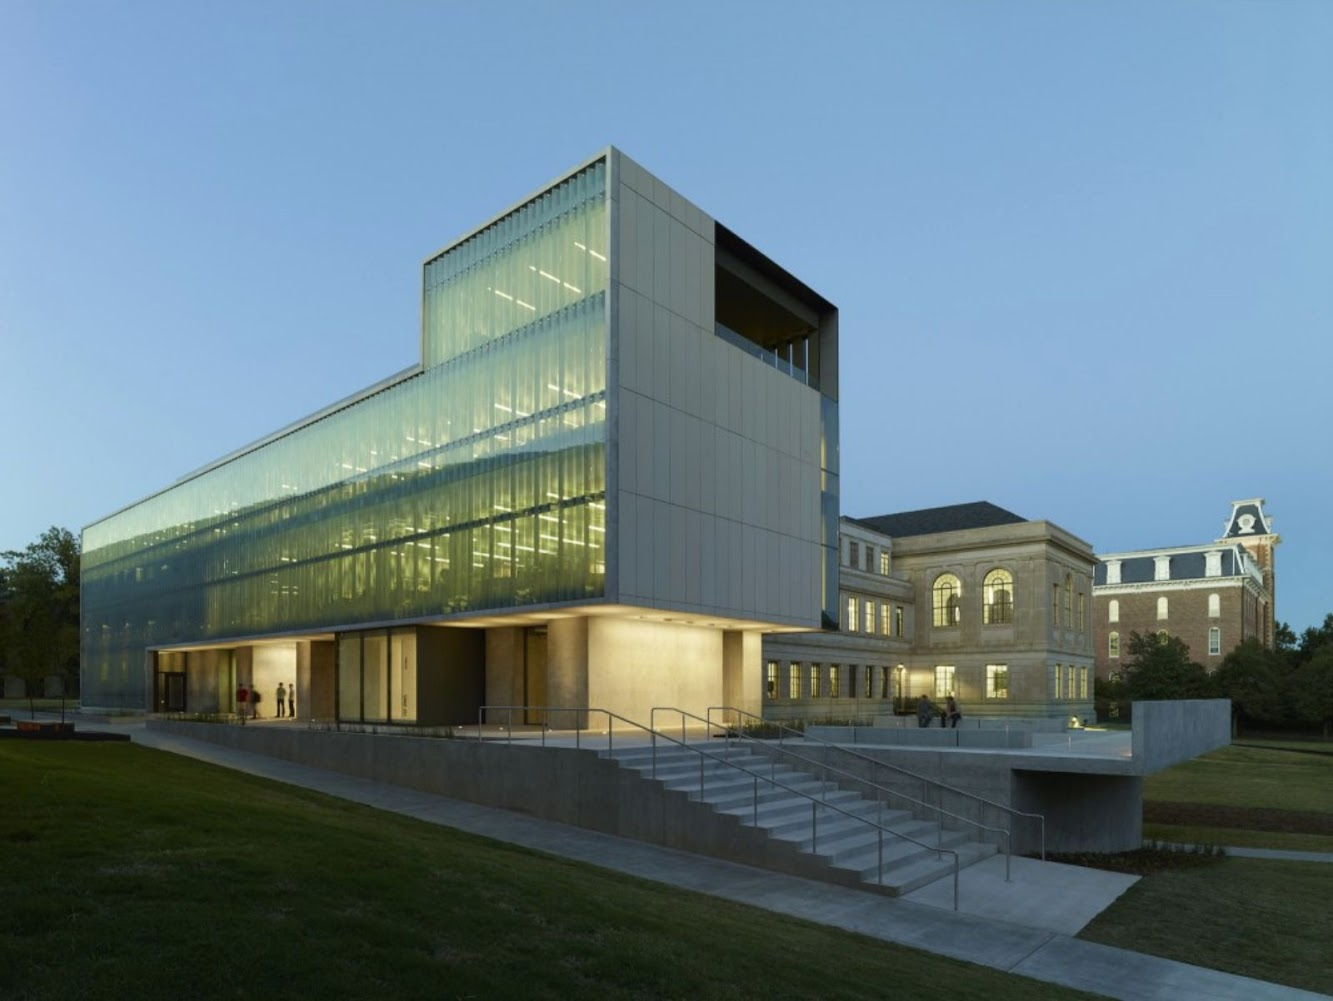 University of Arkansas, Fayetteville, Ar 72701: Steven L Anderson Design Center by Marlon Blackwell Architect